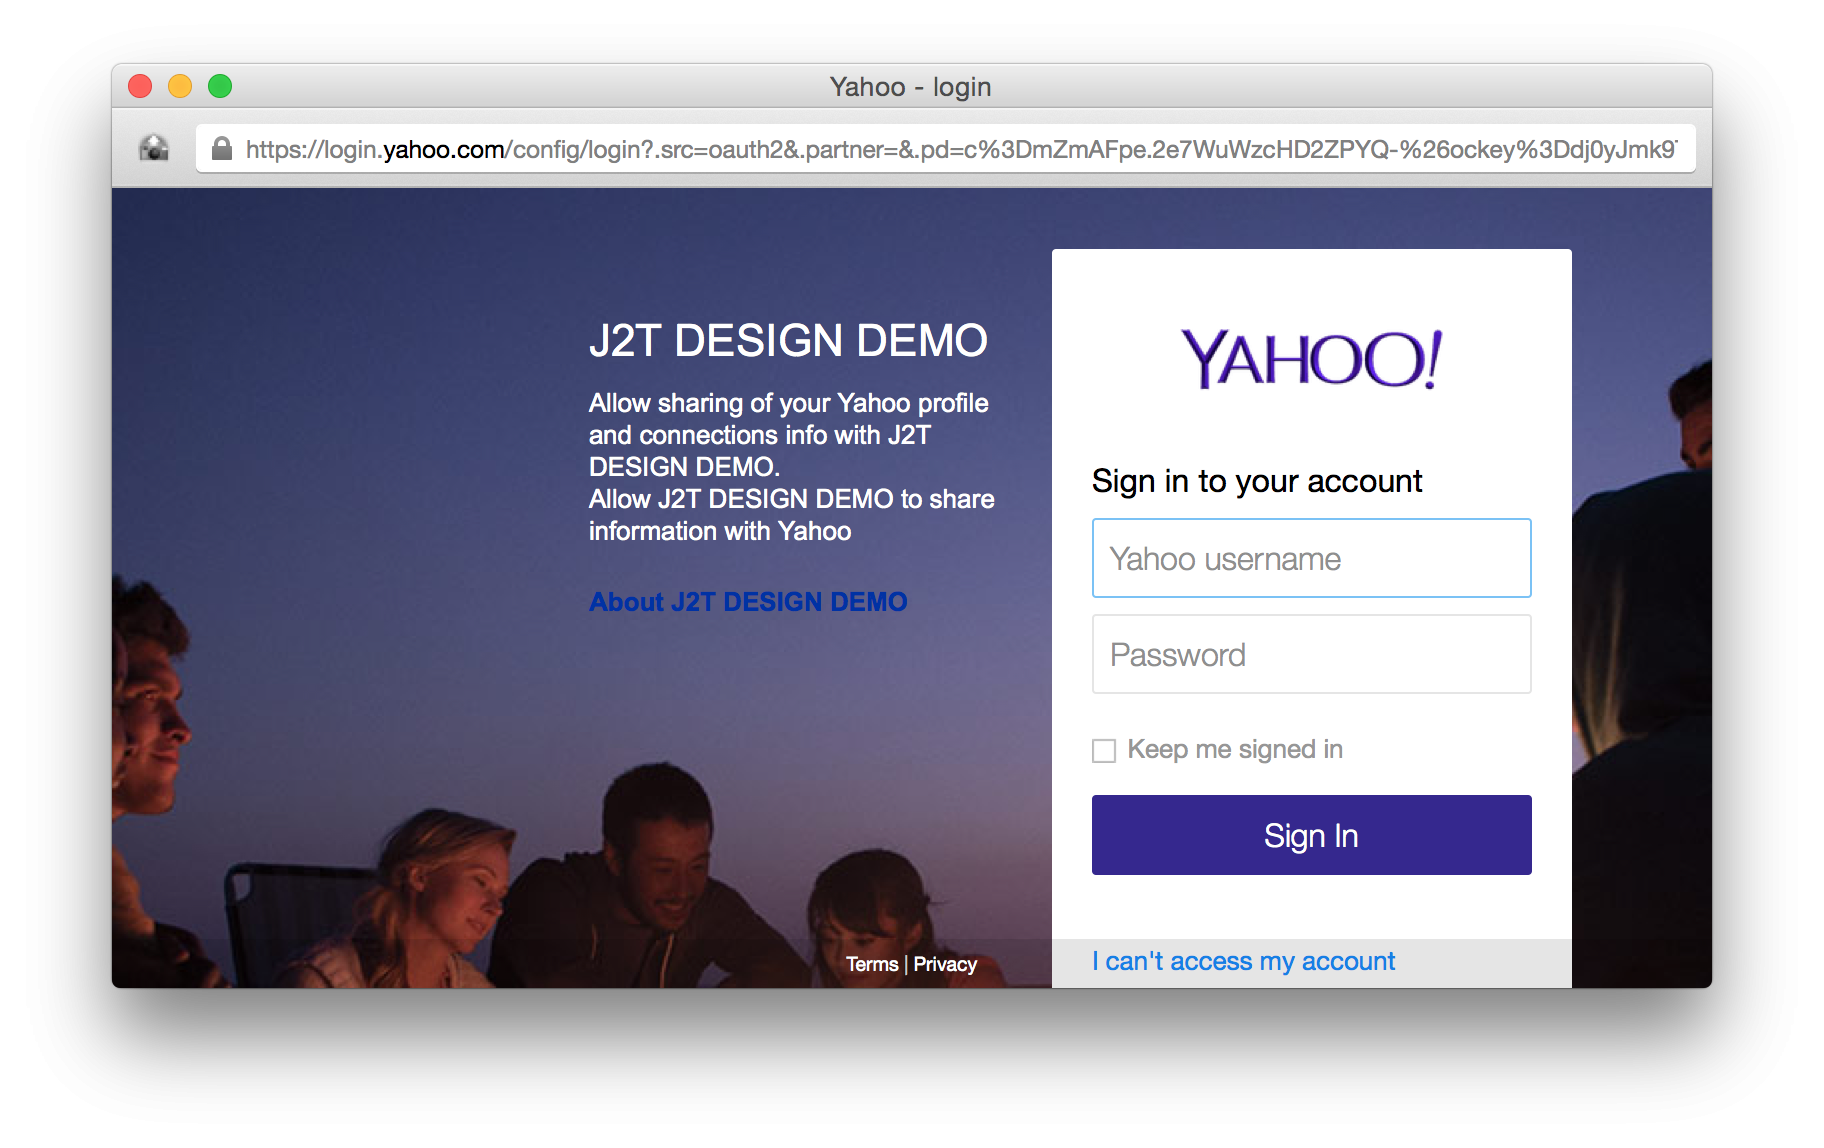 Yahoo sigin in window